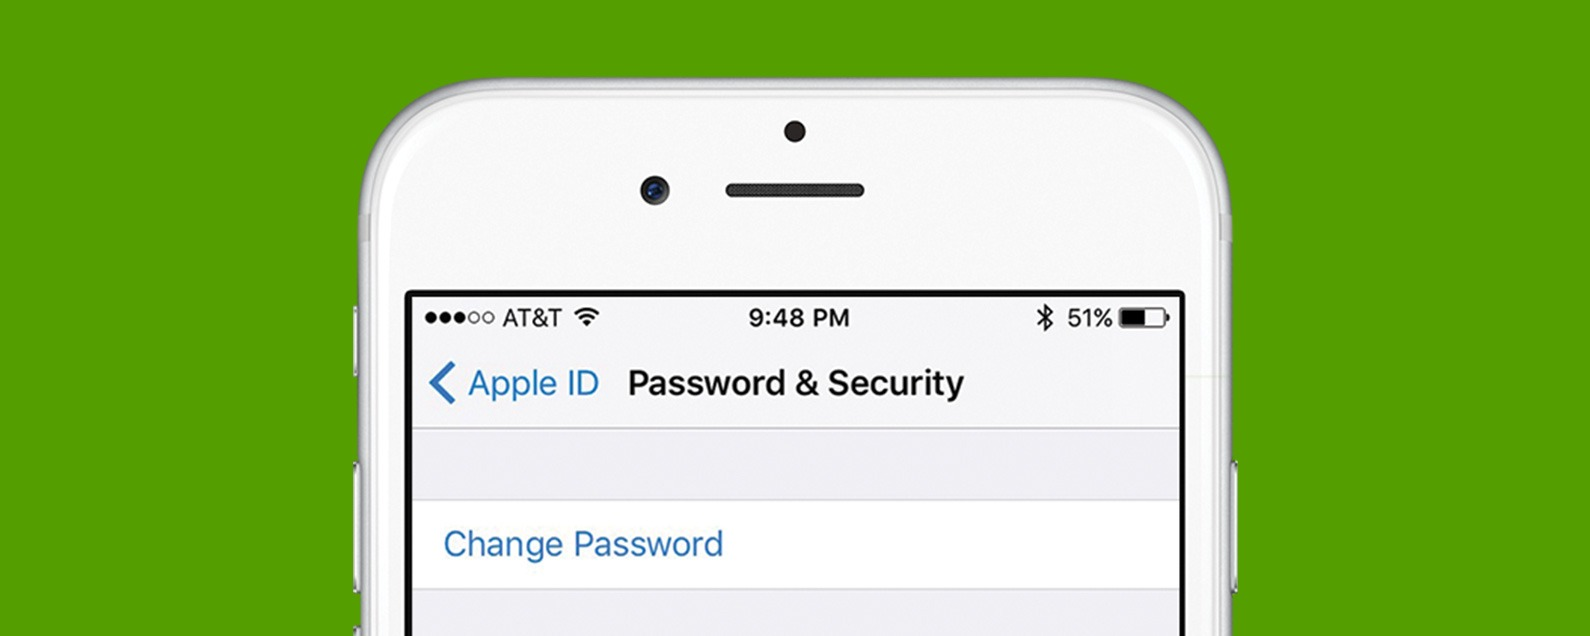 How To Change Your Apple ID Password On IPhone